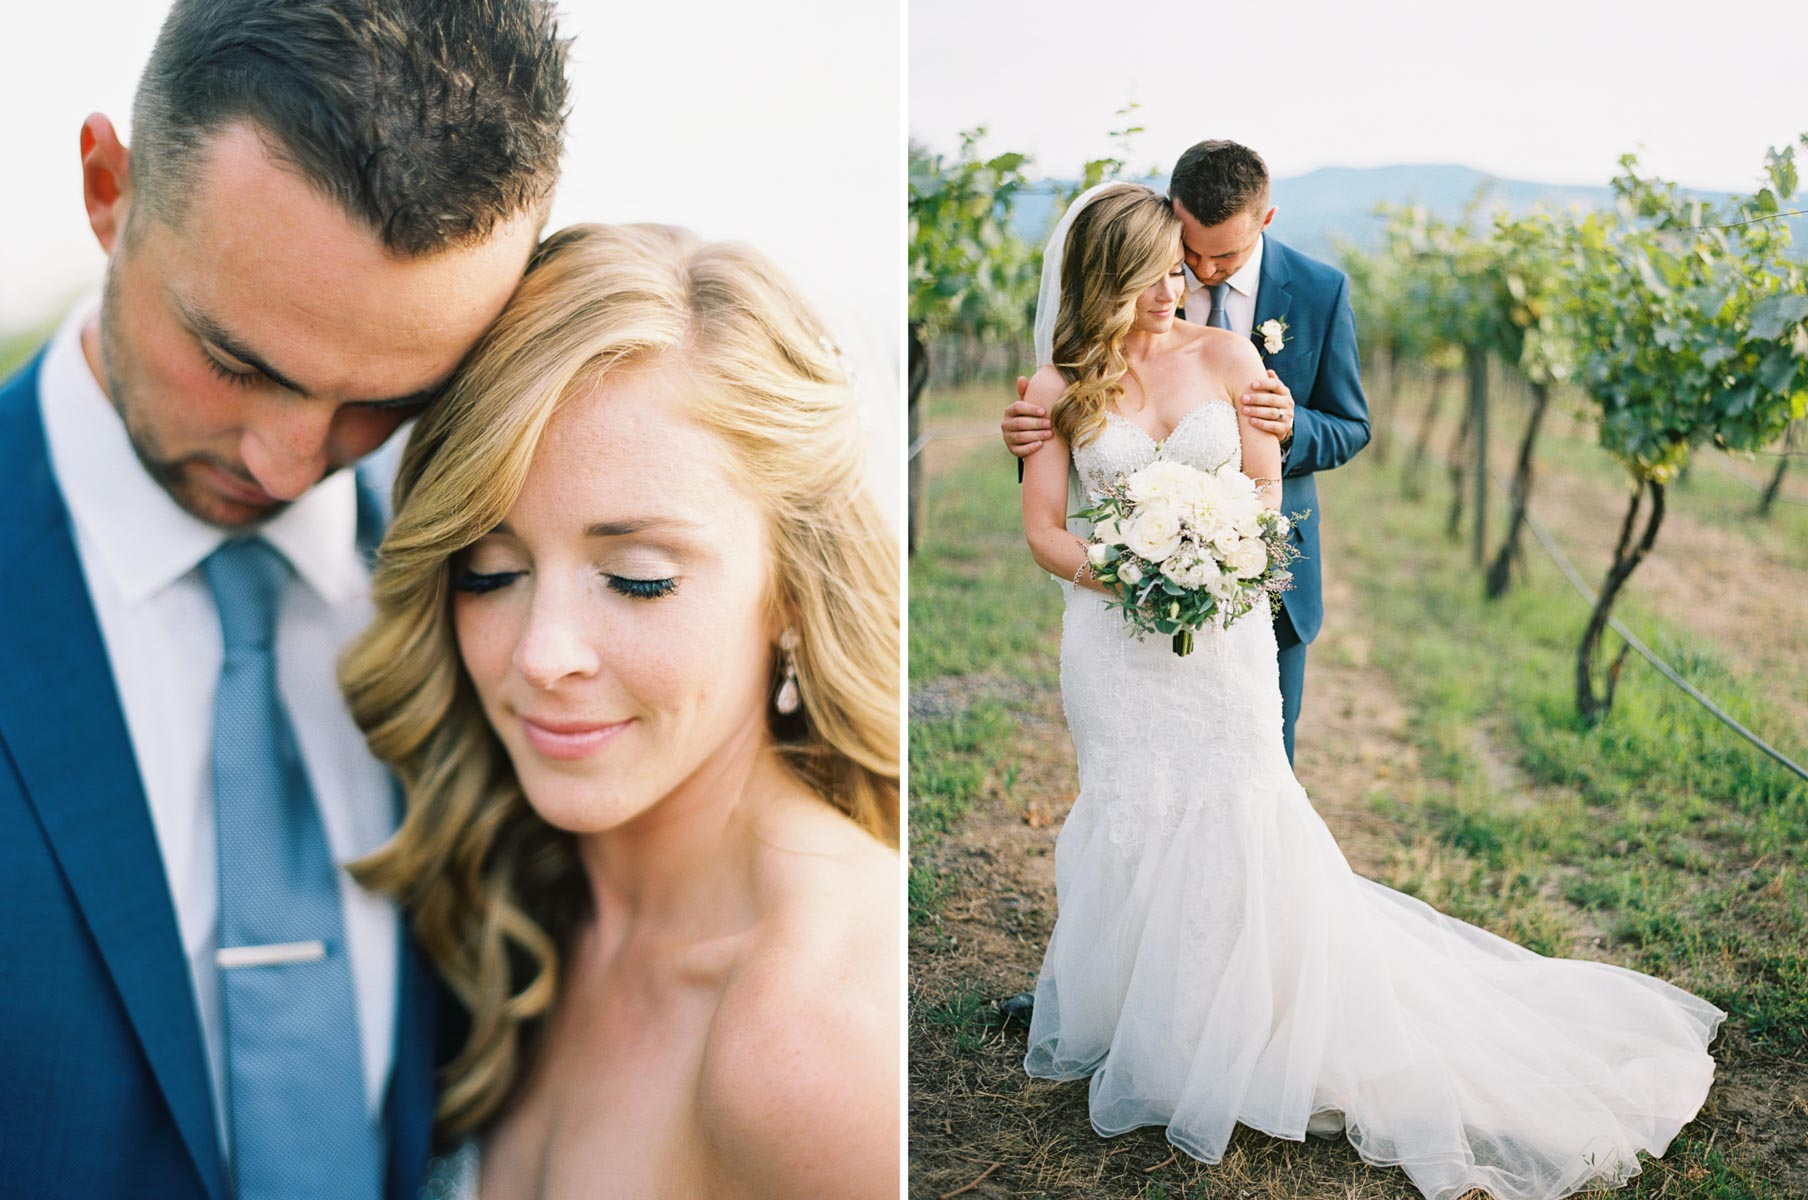 Romantic Winery Portraits at Arbor Crest by Spokane Wedding Photographer Anna Peters